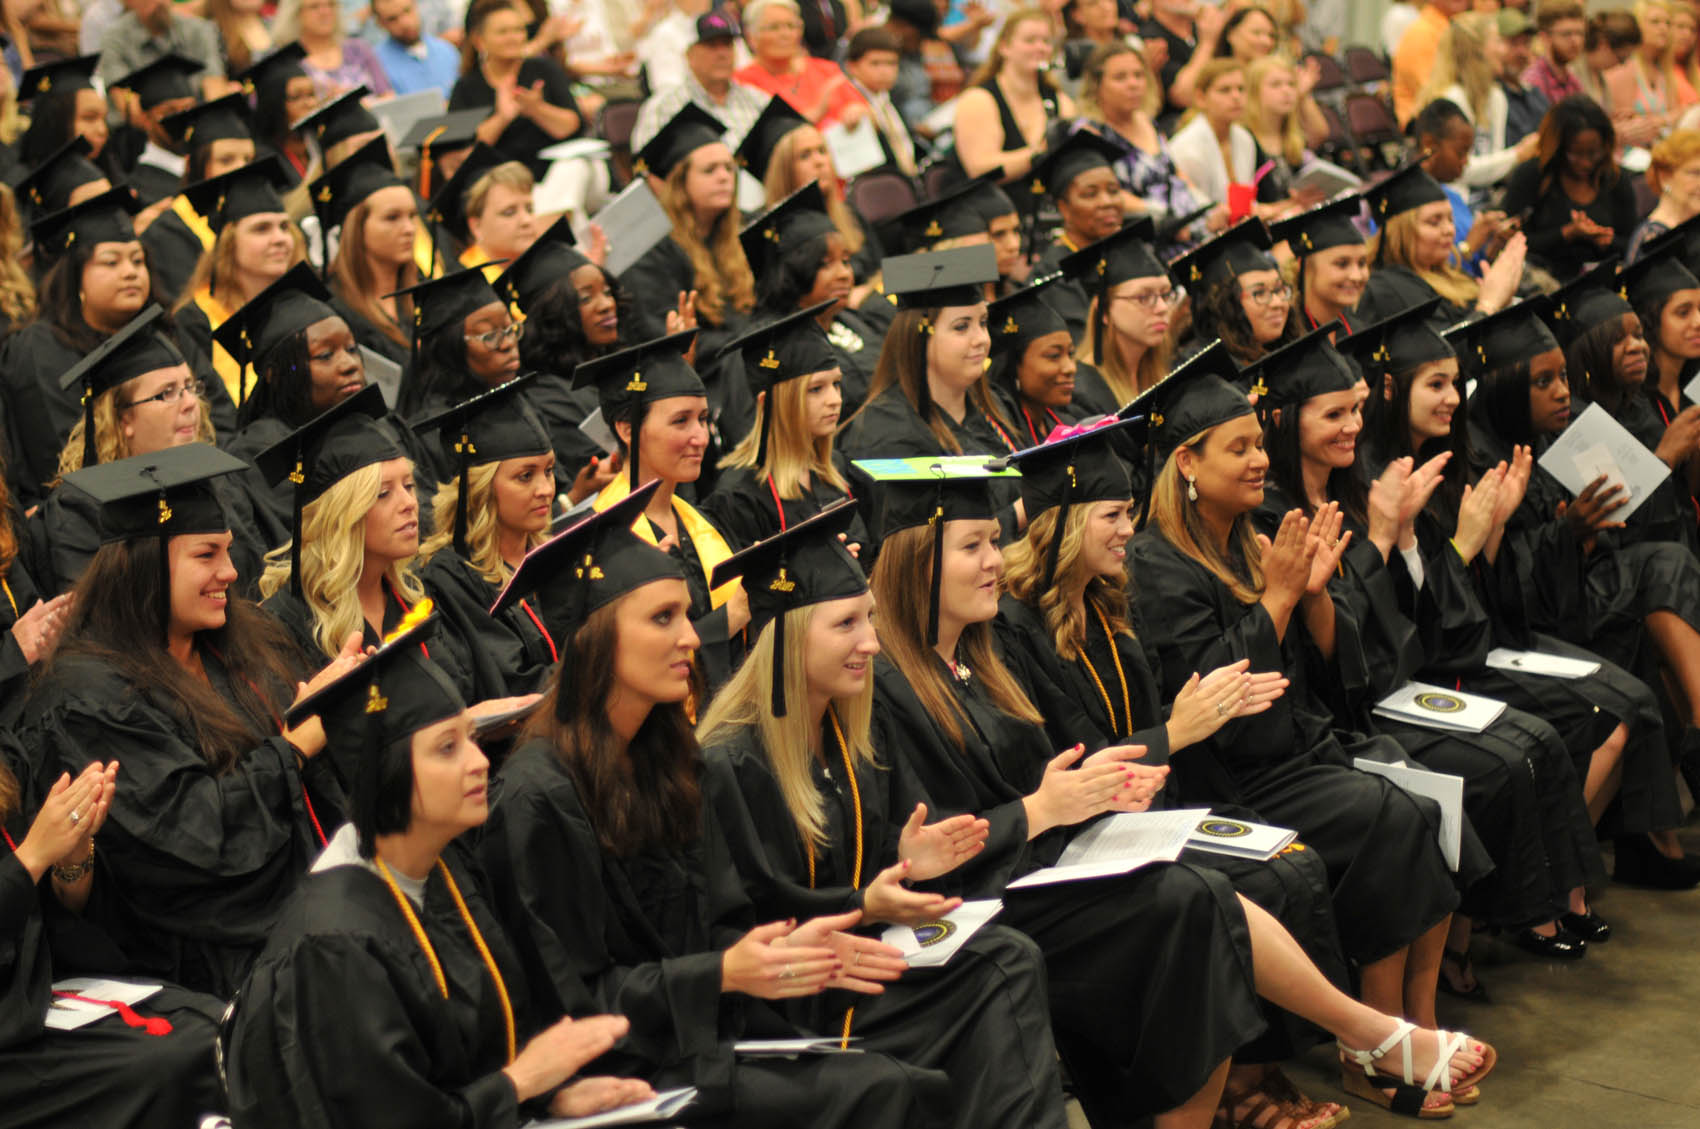 Click to enlarge,  There are approximately 800 members of the Class of 2016 at Central Carolina Community College. Commencement exercises were held on May 12 at the Dennis A. Wicker Civic Center in Sanford.